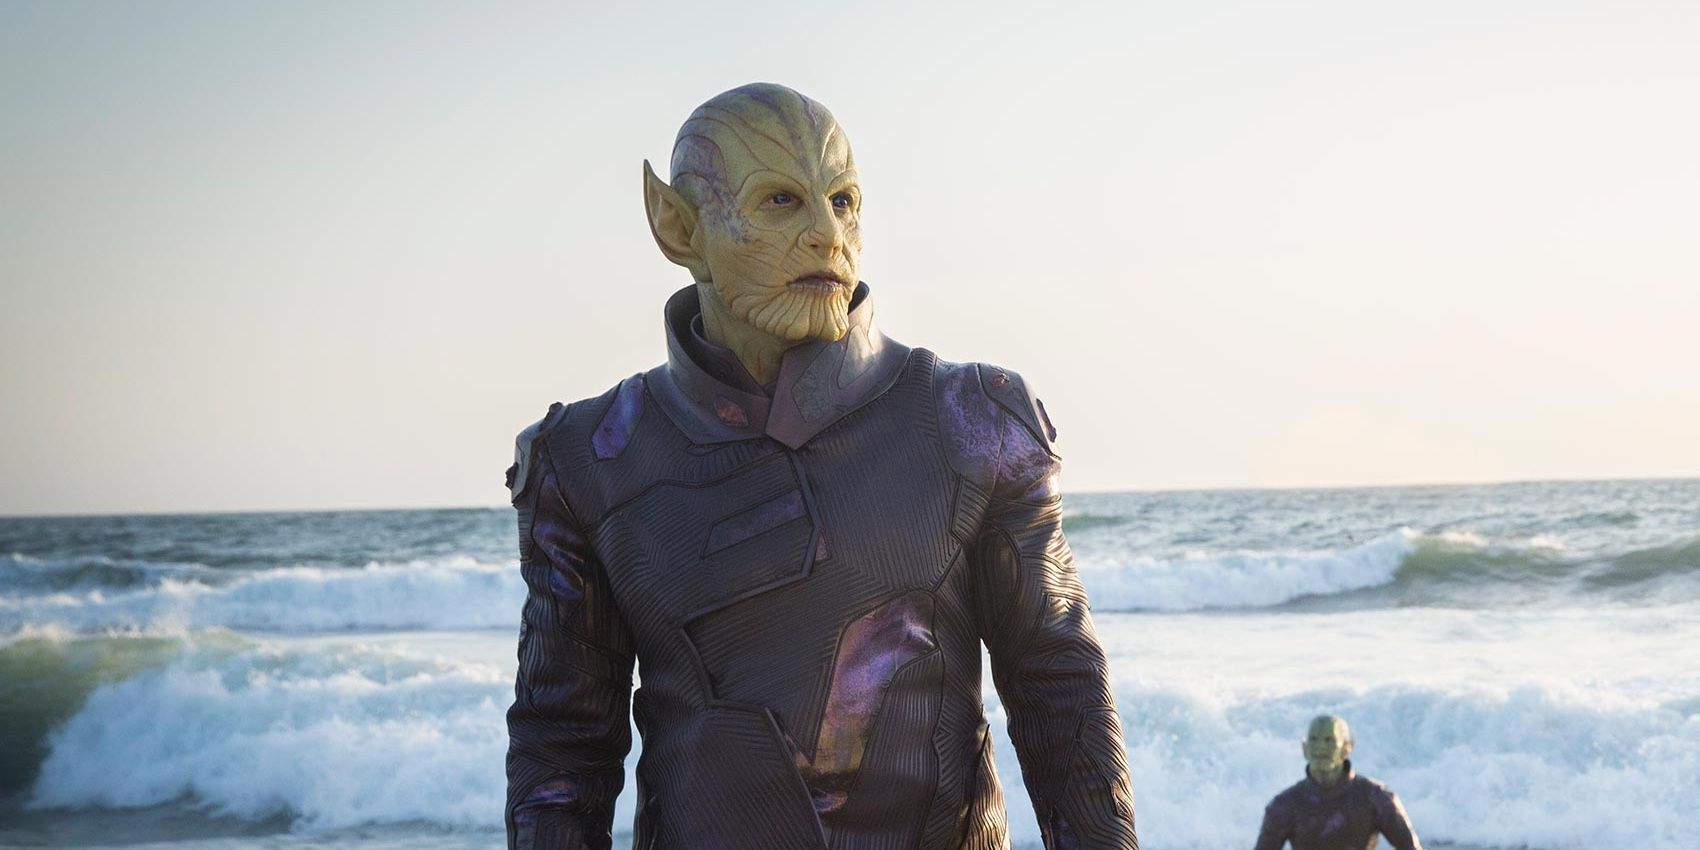 Captain Marvel Movie Image First Look At Skrulls In The Mcu